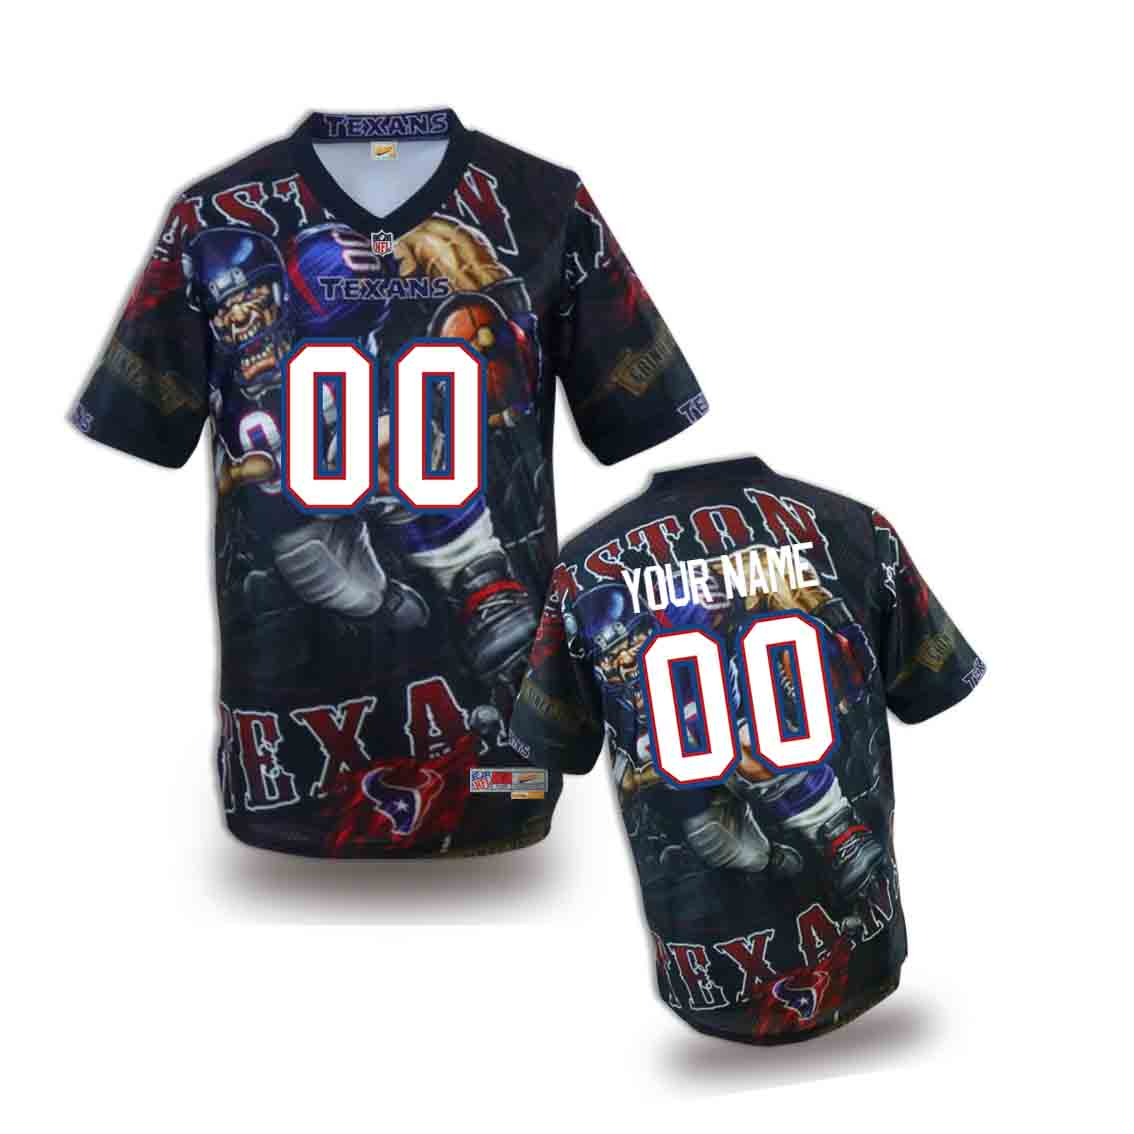 Nike Texans Customized Fashion Stitched Youth Jerseys01